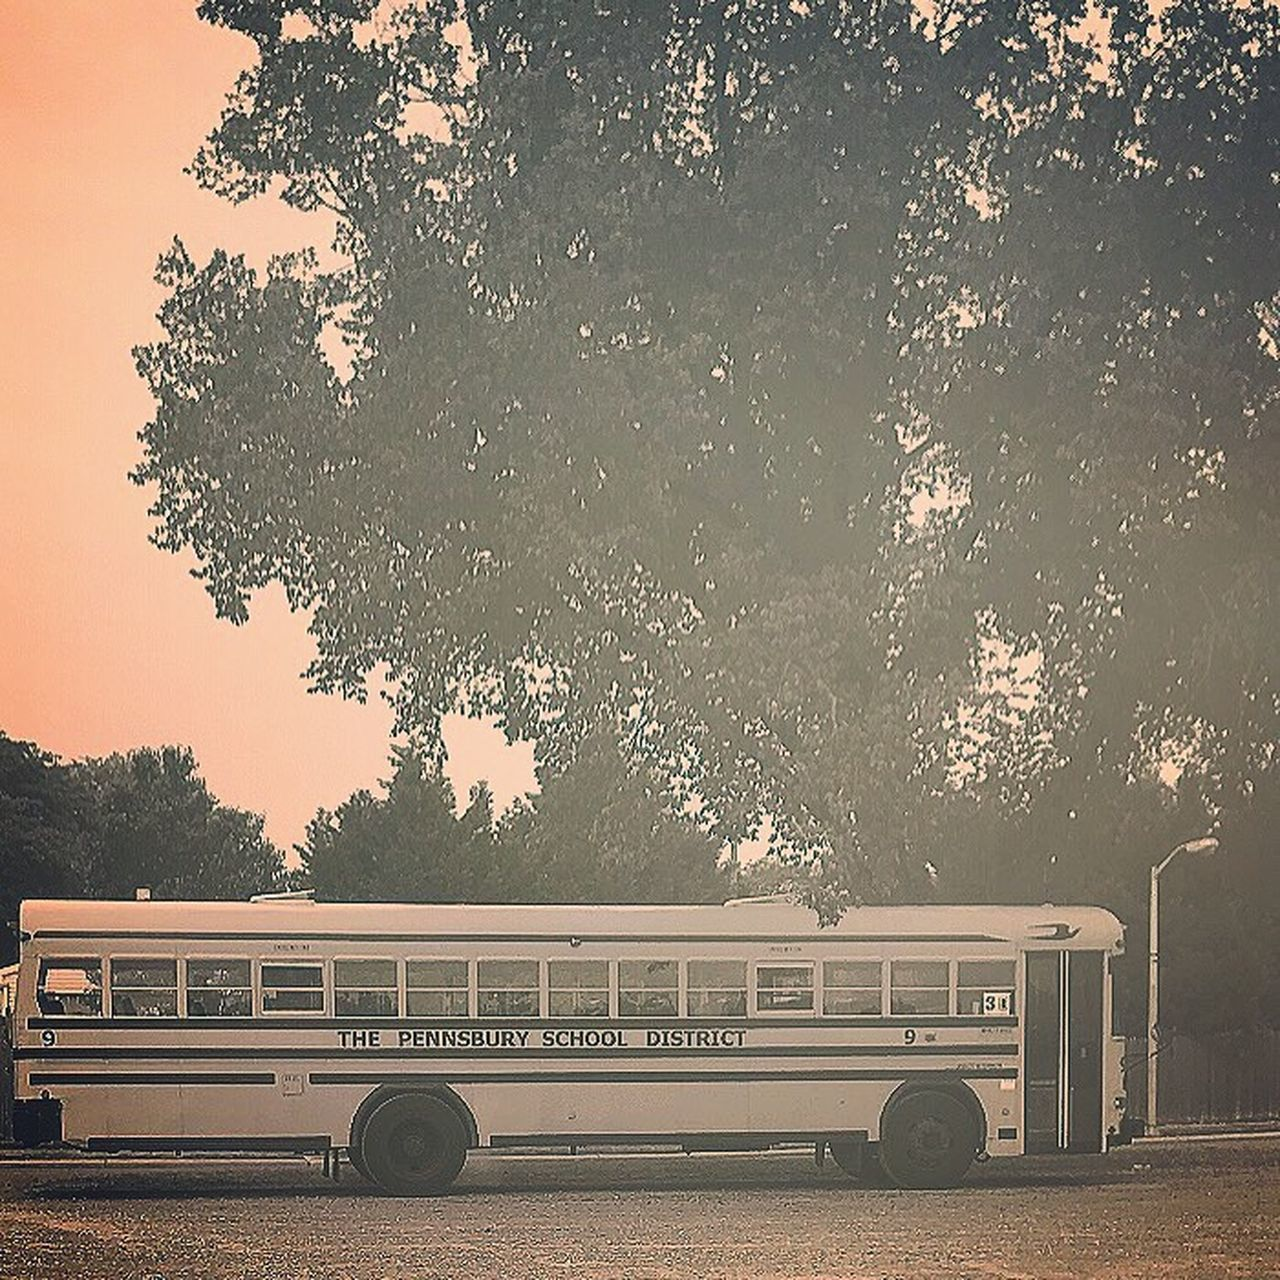 Previous post school bus Tree Retro Styled Mode Of Transport Land Vehicle Outdoors No People Nature Sky Day Iphonephotography Scenics Vintage Affect Sunlight Landscape Camerafilters